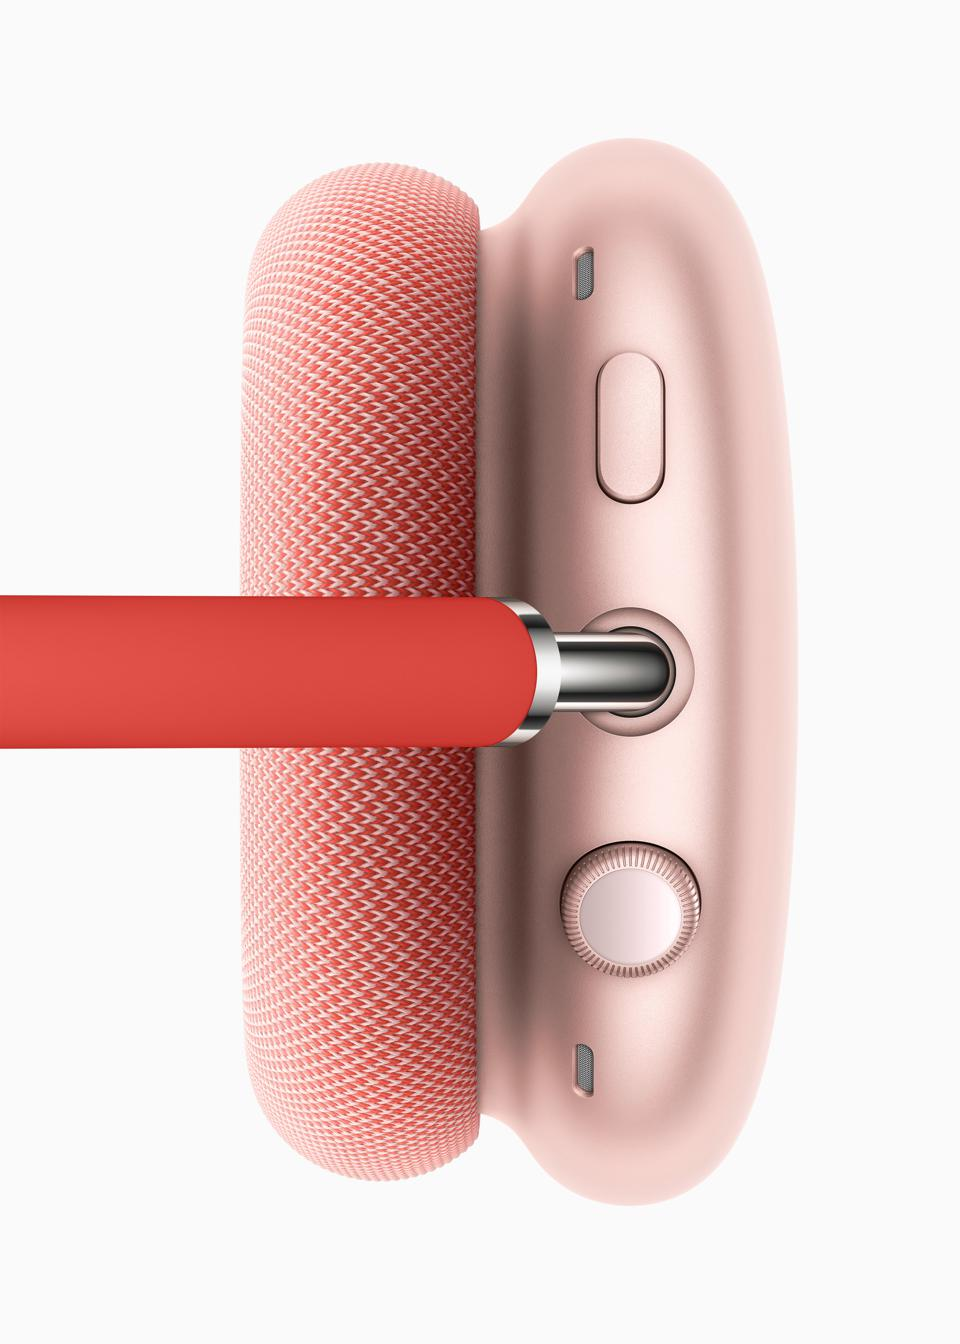 The Digital Crown on the AirPods Max.